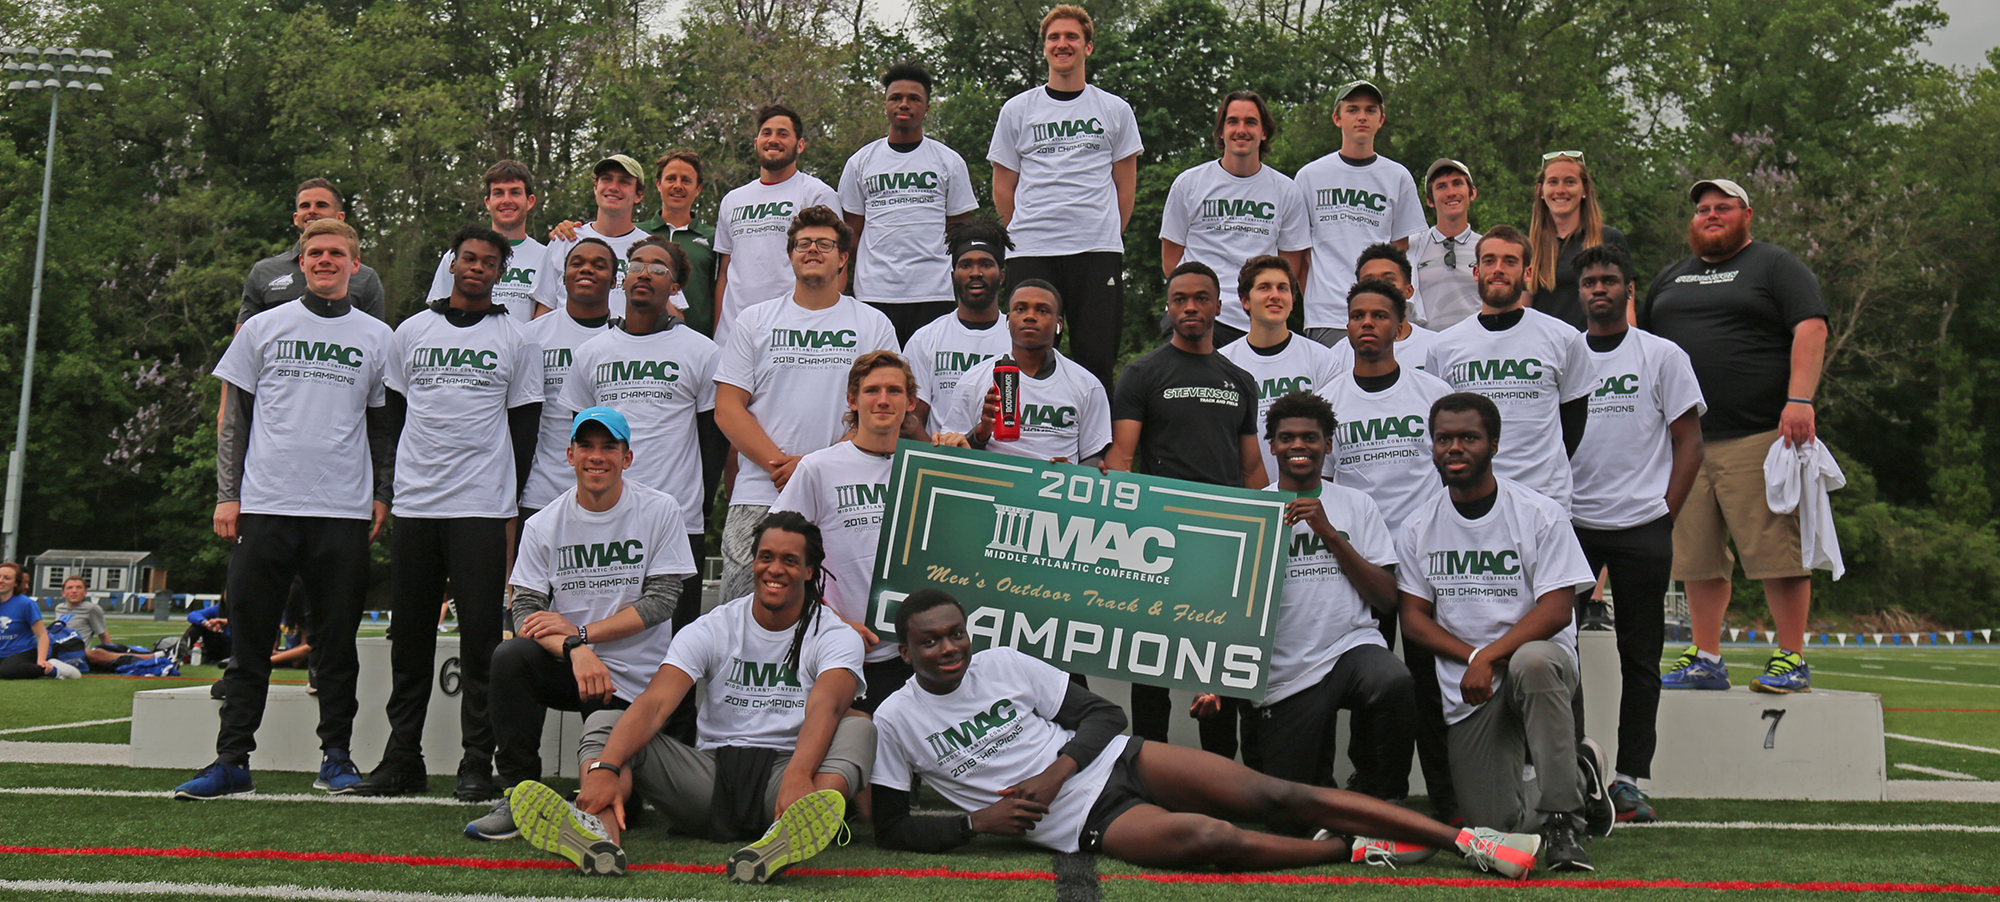 Mustangs Win Second-Straight MAC Outdoor Title, Belser Repeats as 100, 200 Meter Champion